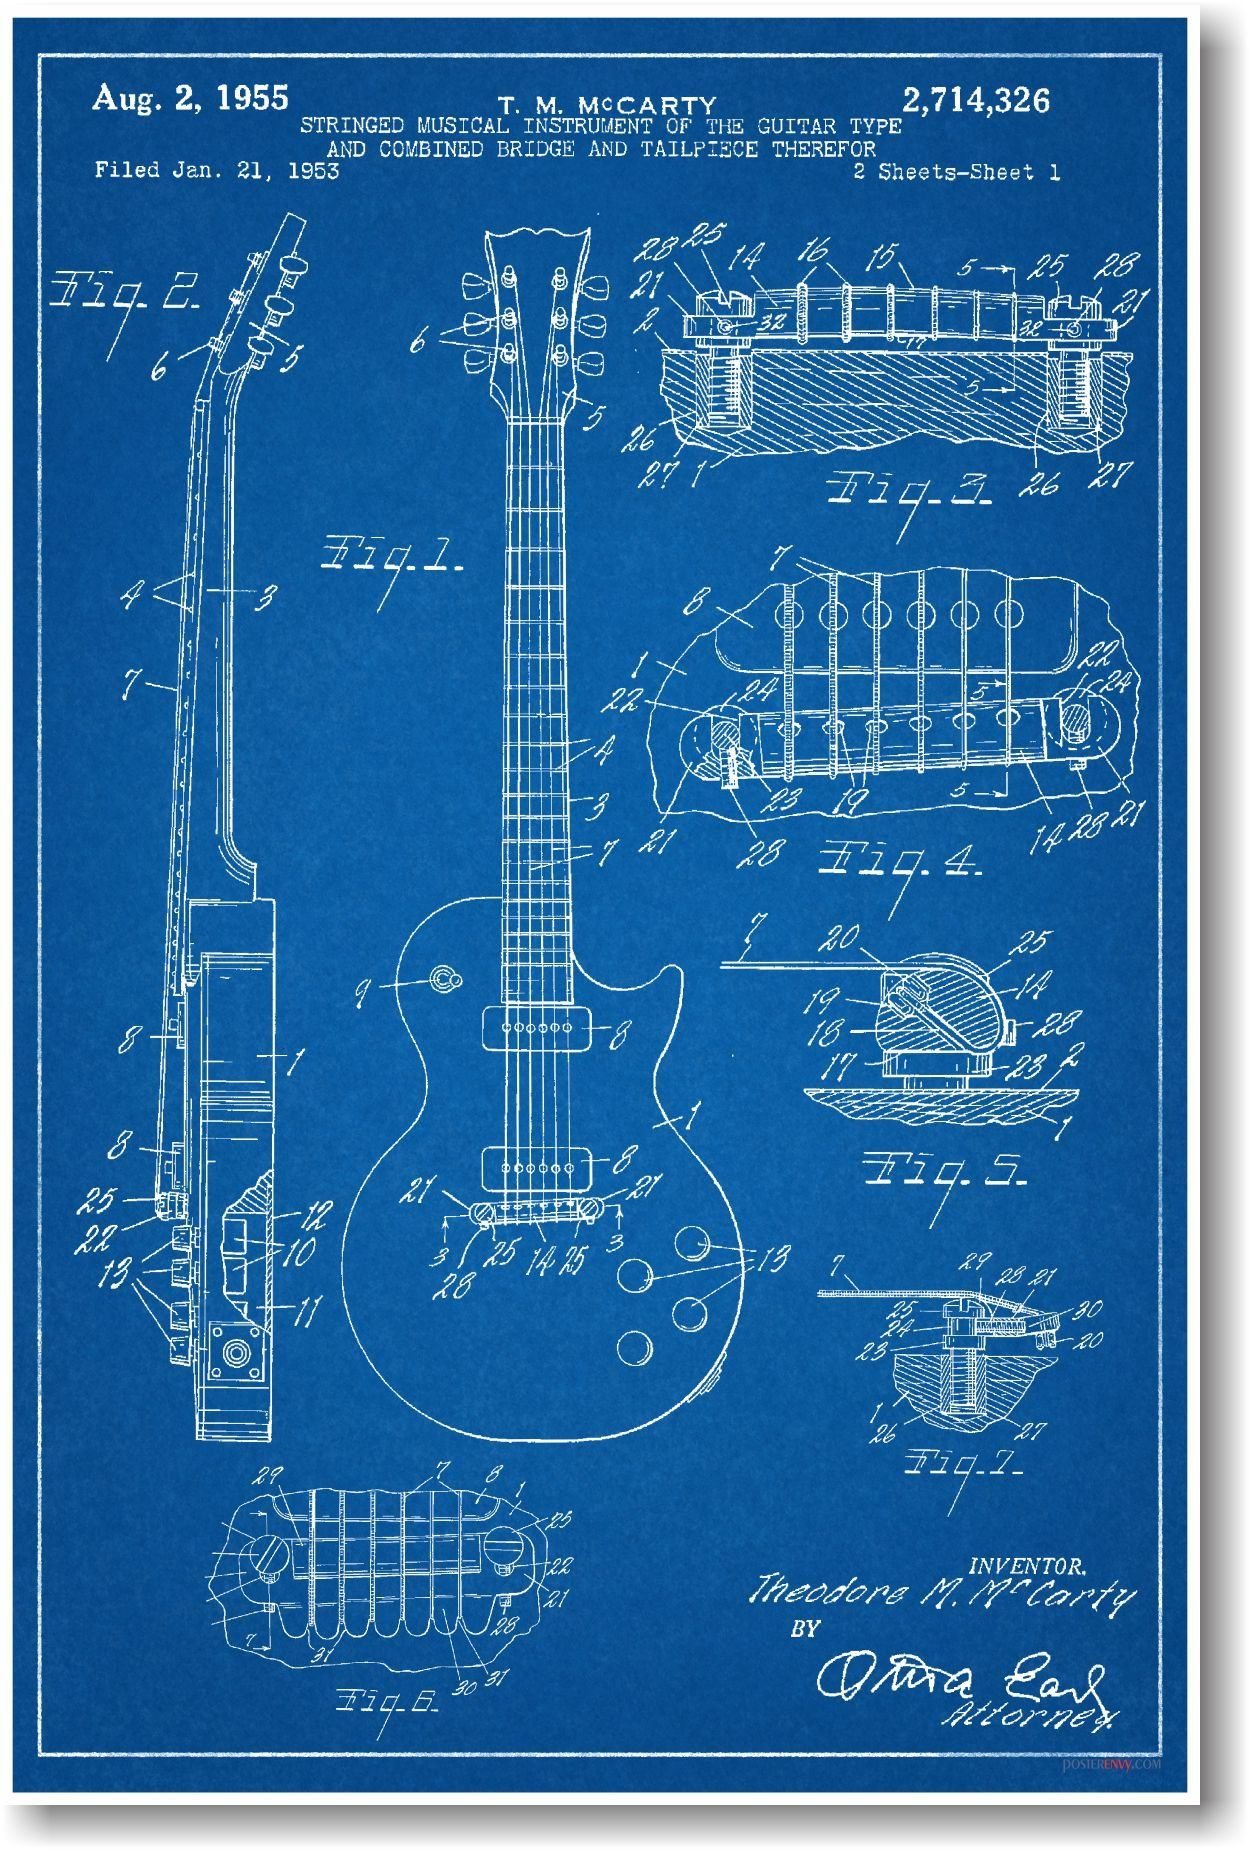 Amazon gibson les paul guitar patent new famous invention amazon gibson les paul guitar patent new famous invention blueprint poster malvernweather